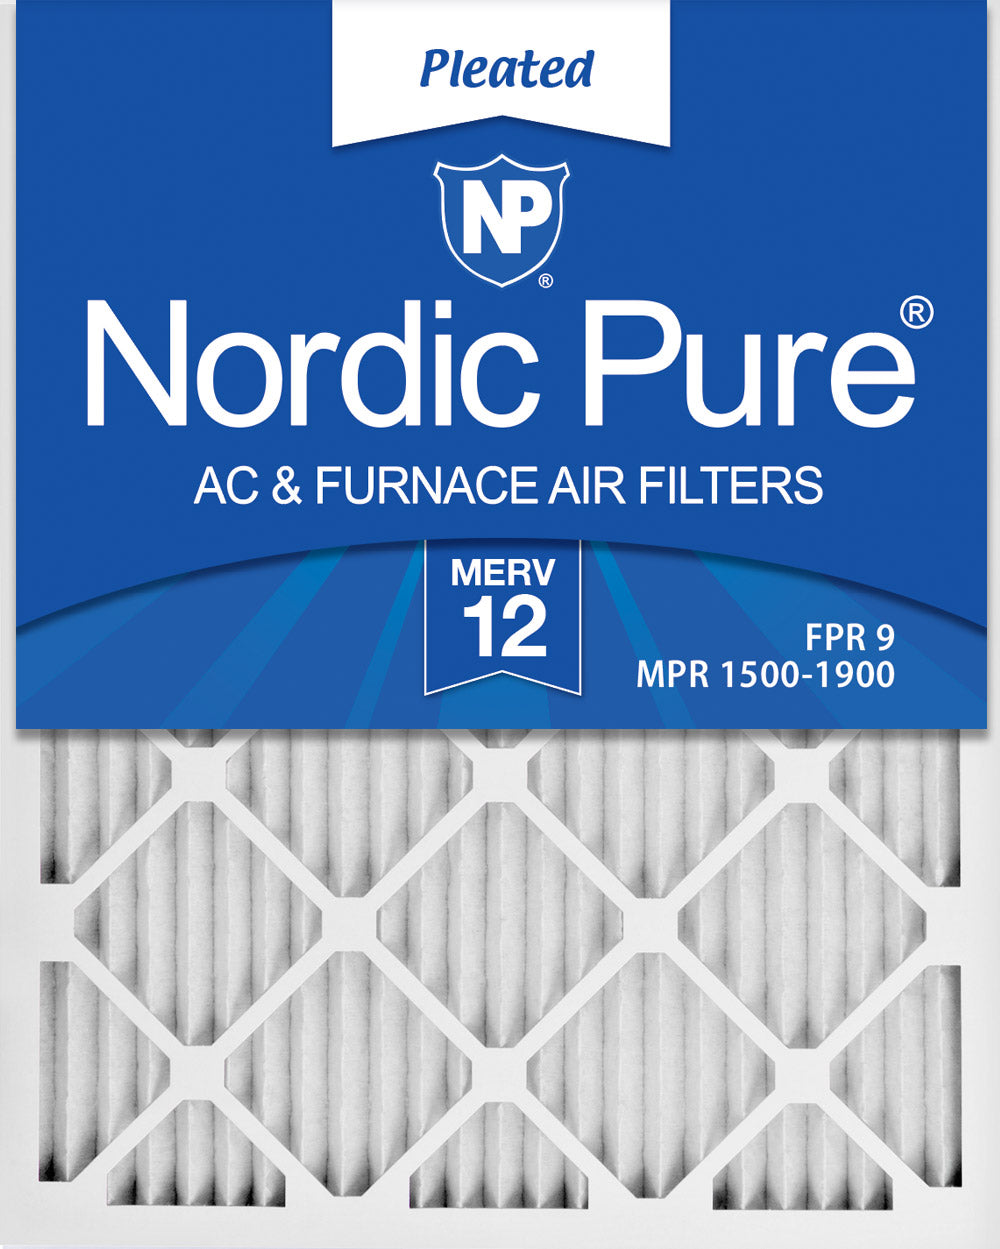 14x20x1 Pleated MERV 12 Air Filters 6 Pack